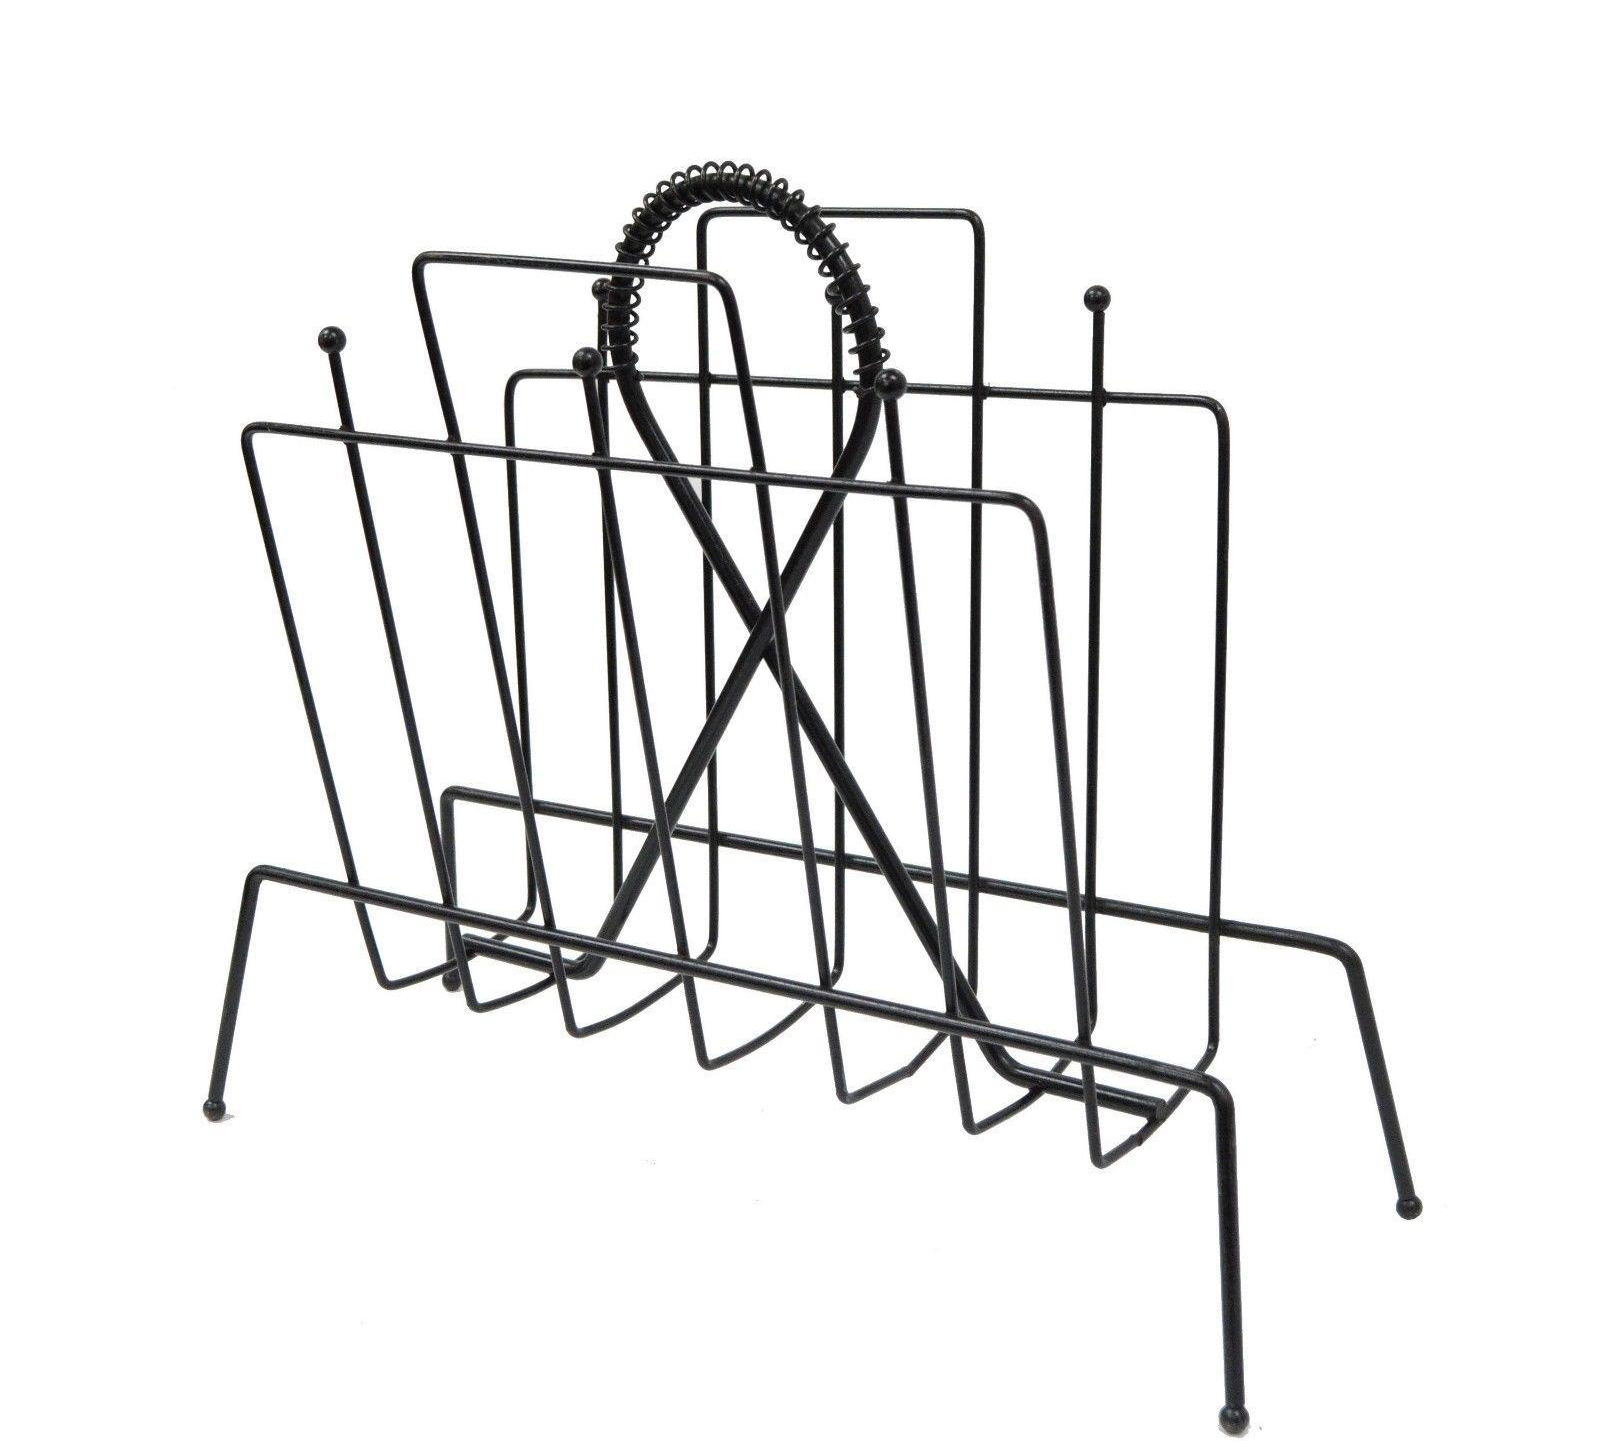 vintage mid century modern atomic wire metal black magazine rack Atomic Hookah vintage mid century modern atomic wire metal black magazine rack holder hairpin for sale image